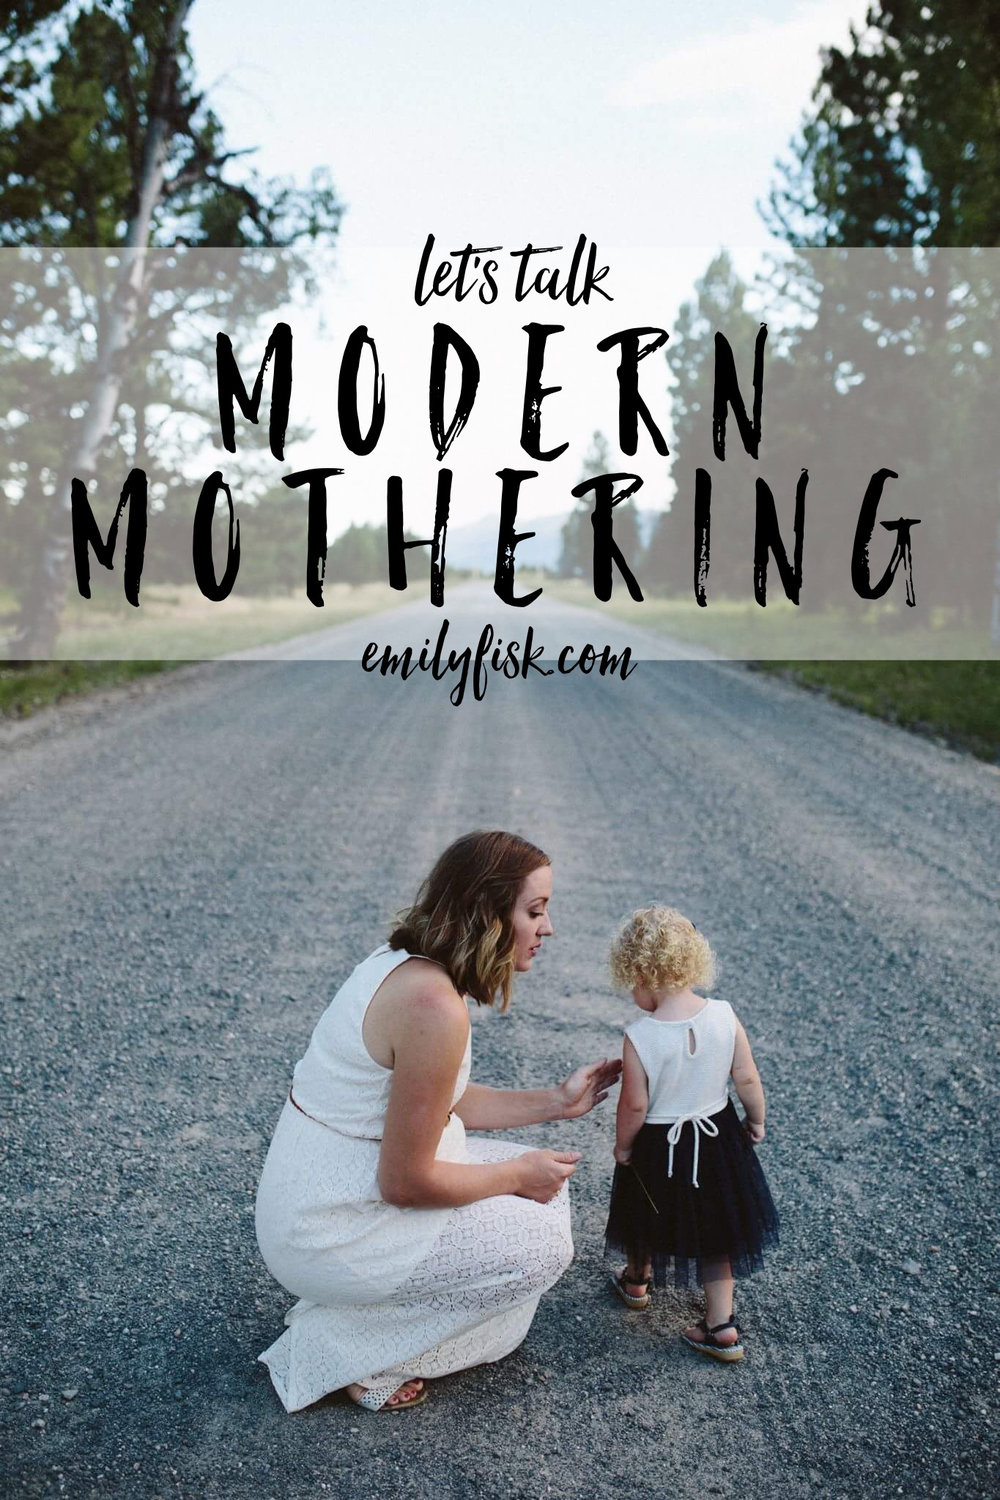 Let's Talk Modern Mothering: a series on emilyfisk.com